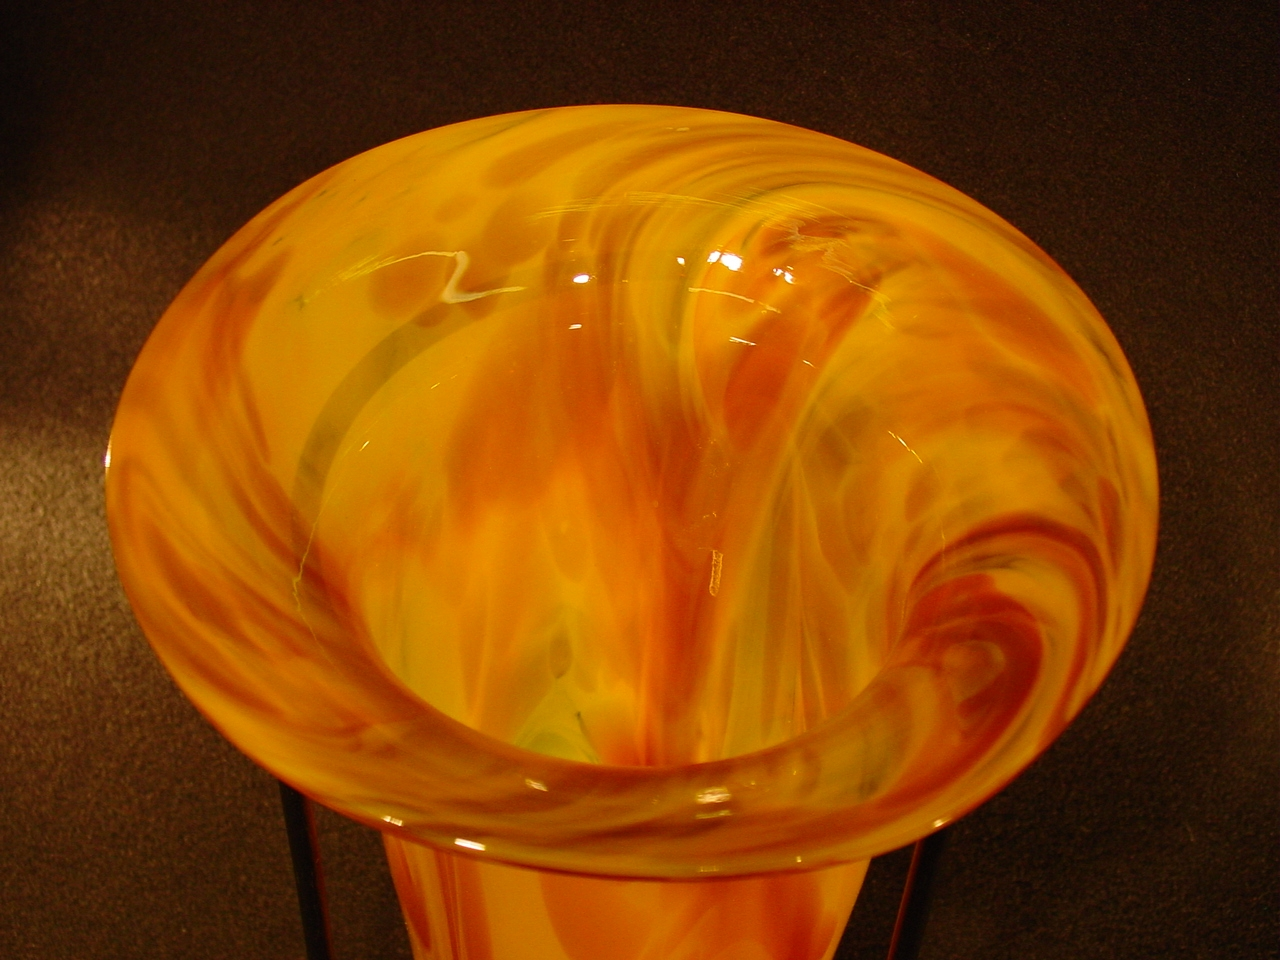 Blown Glass Photoshoot 0408 012